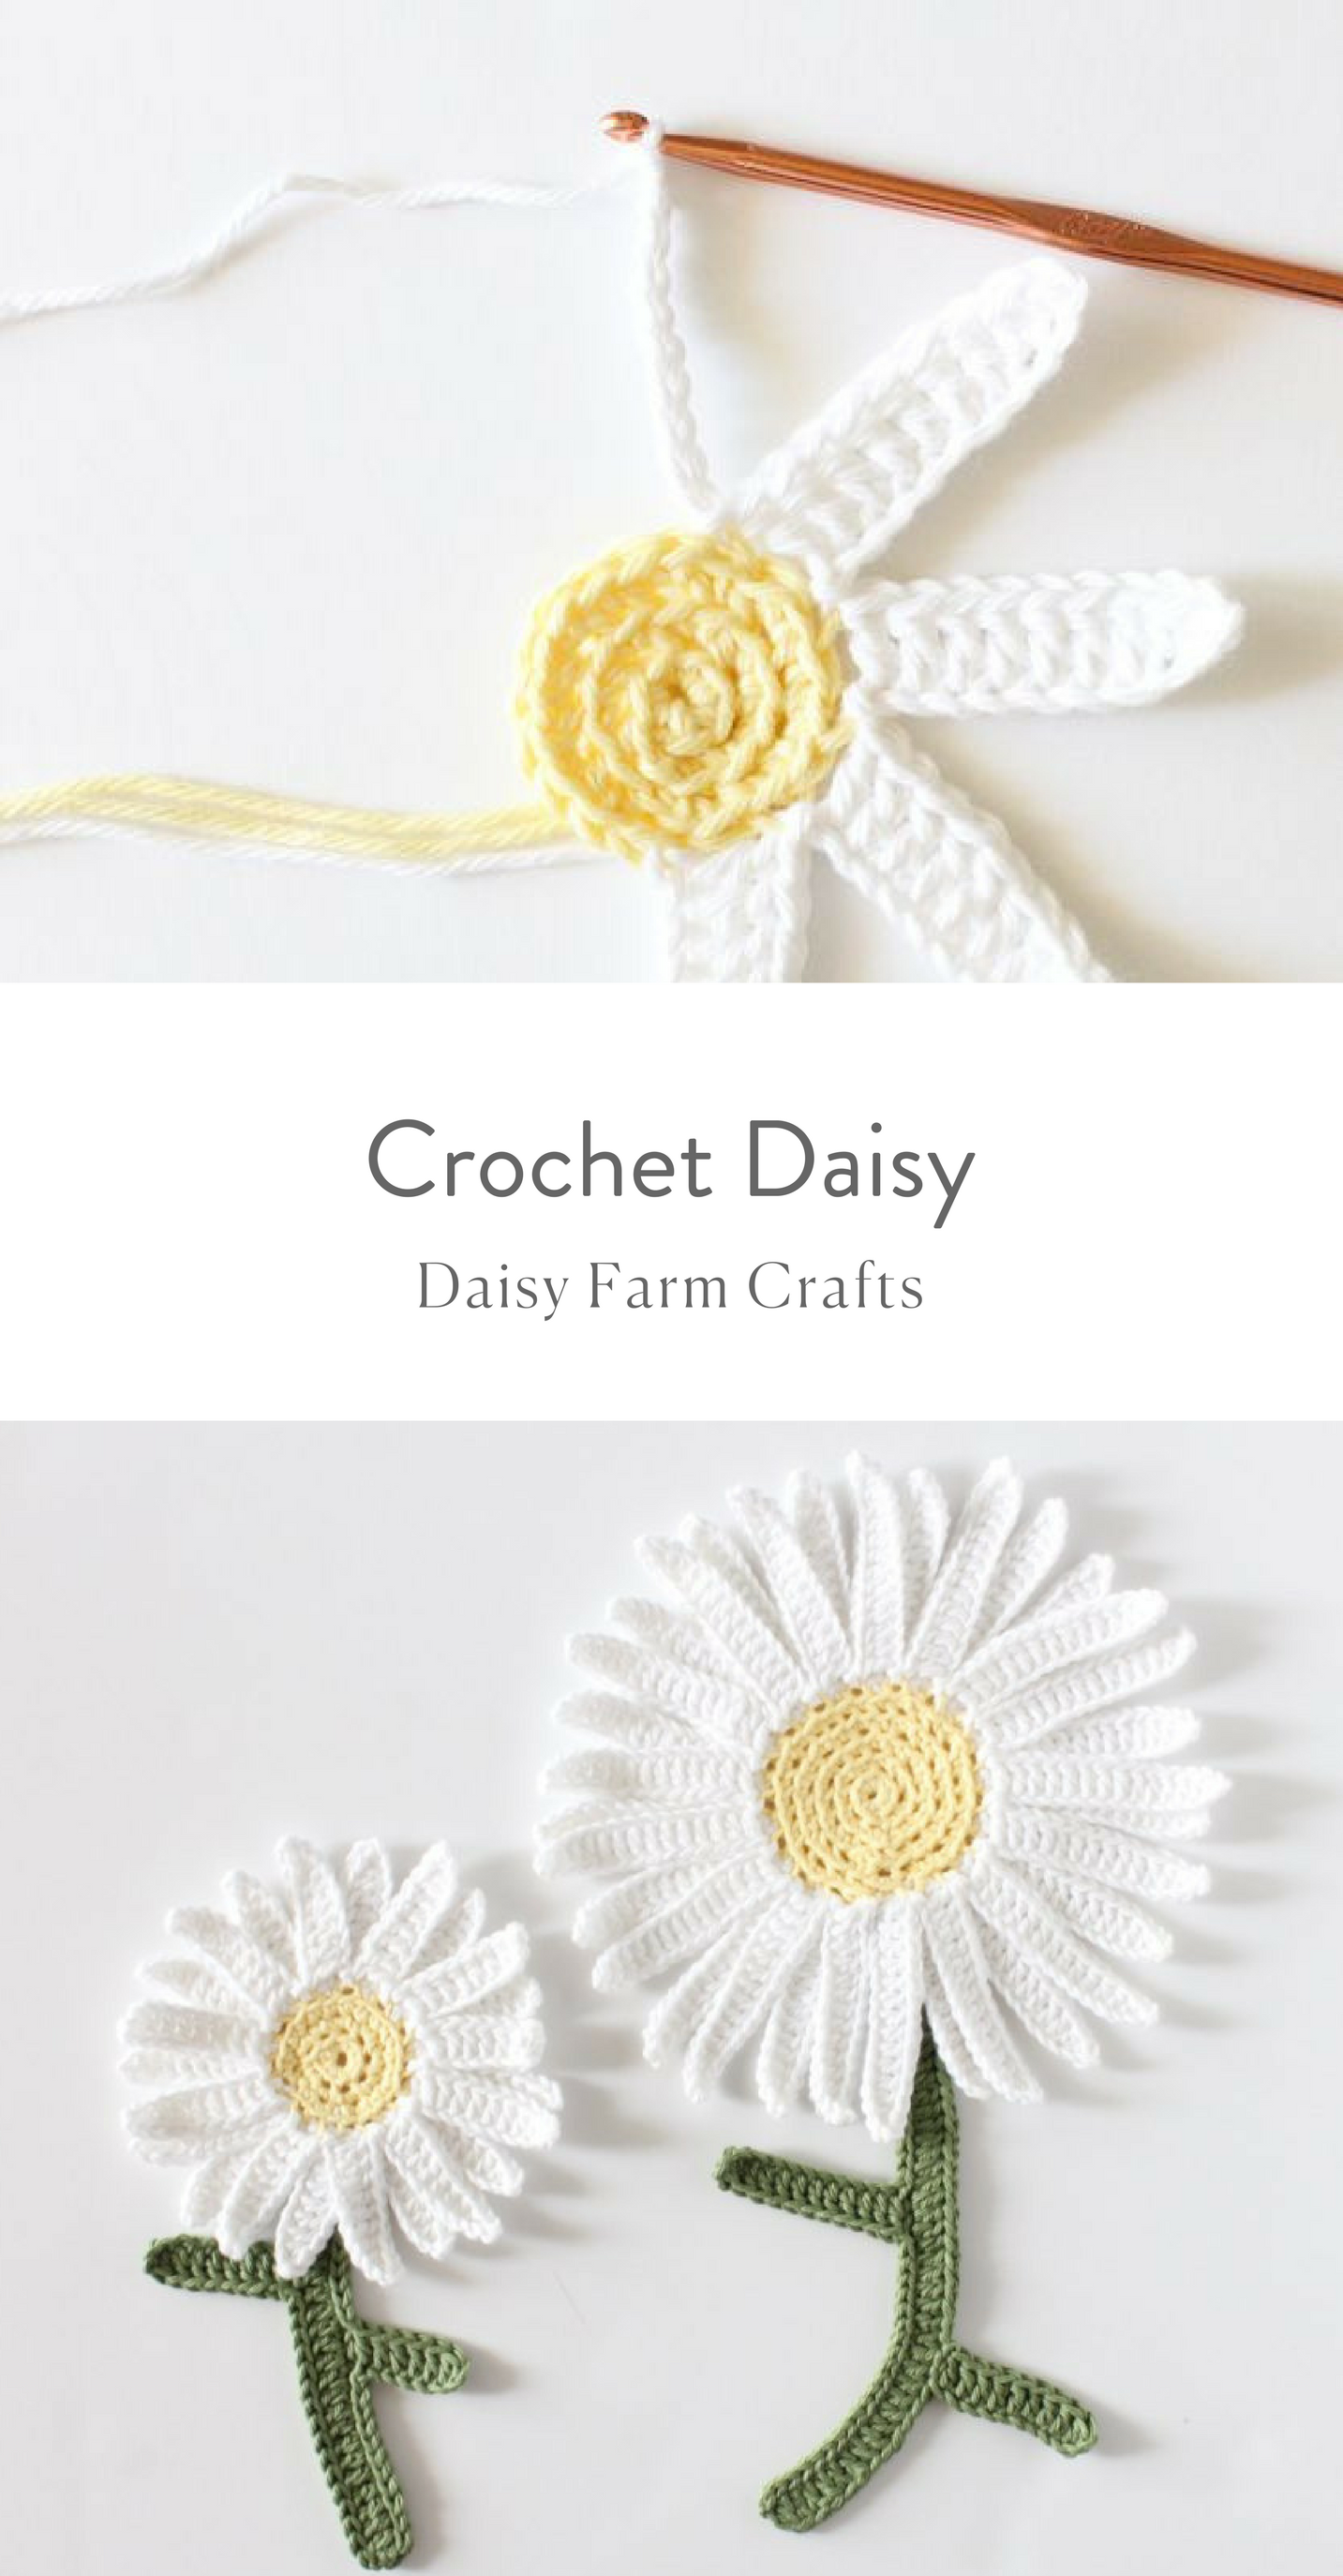 Free Pattern - Crochet Daisy #crochetflowerpatterns